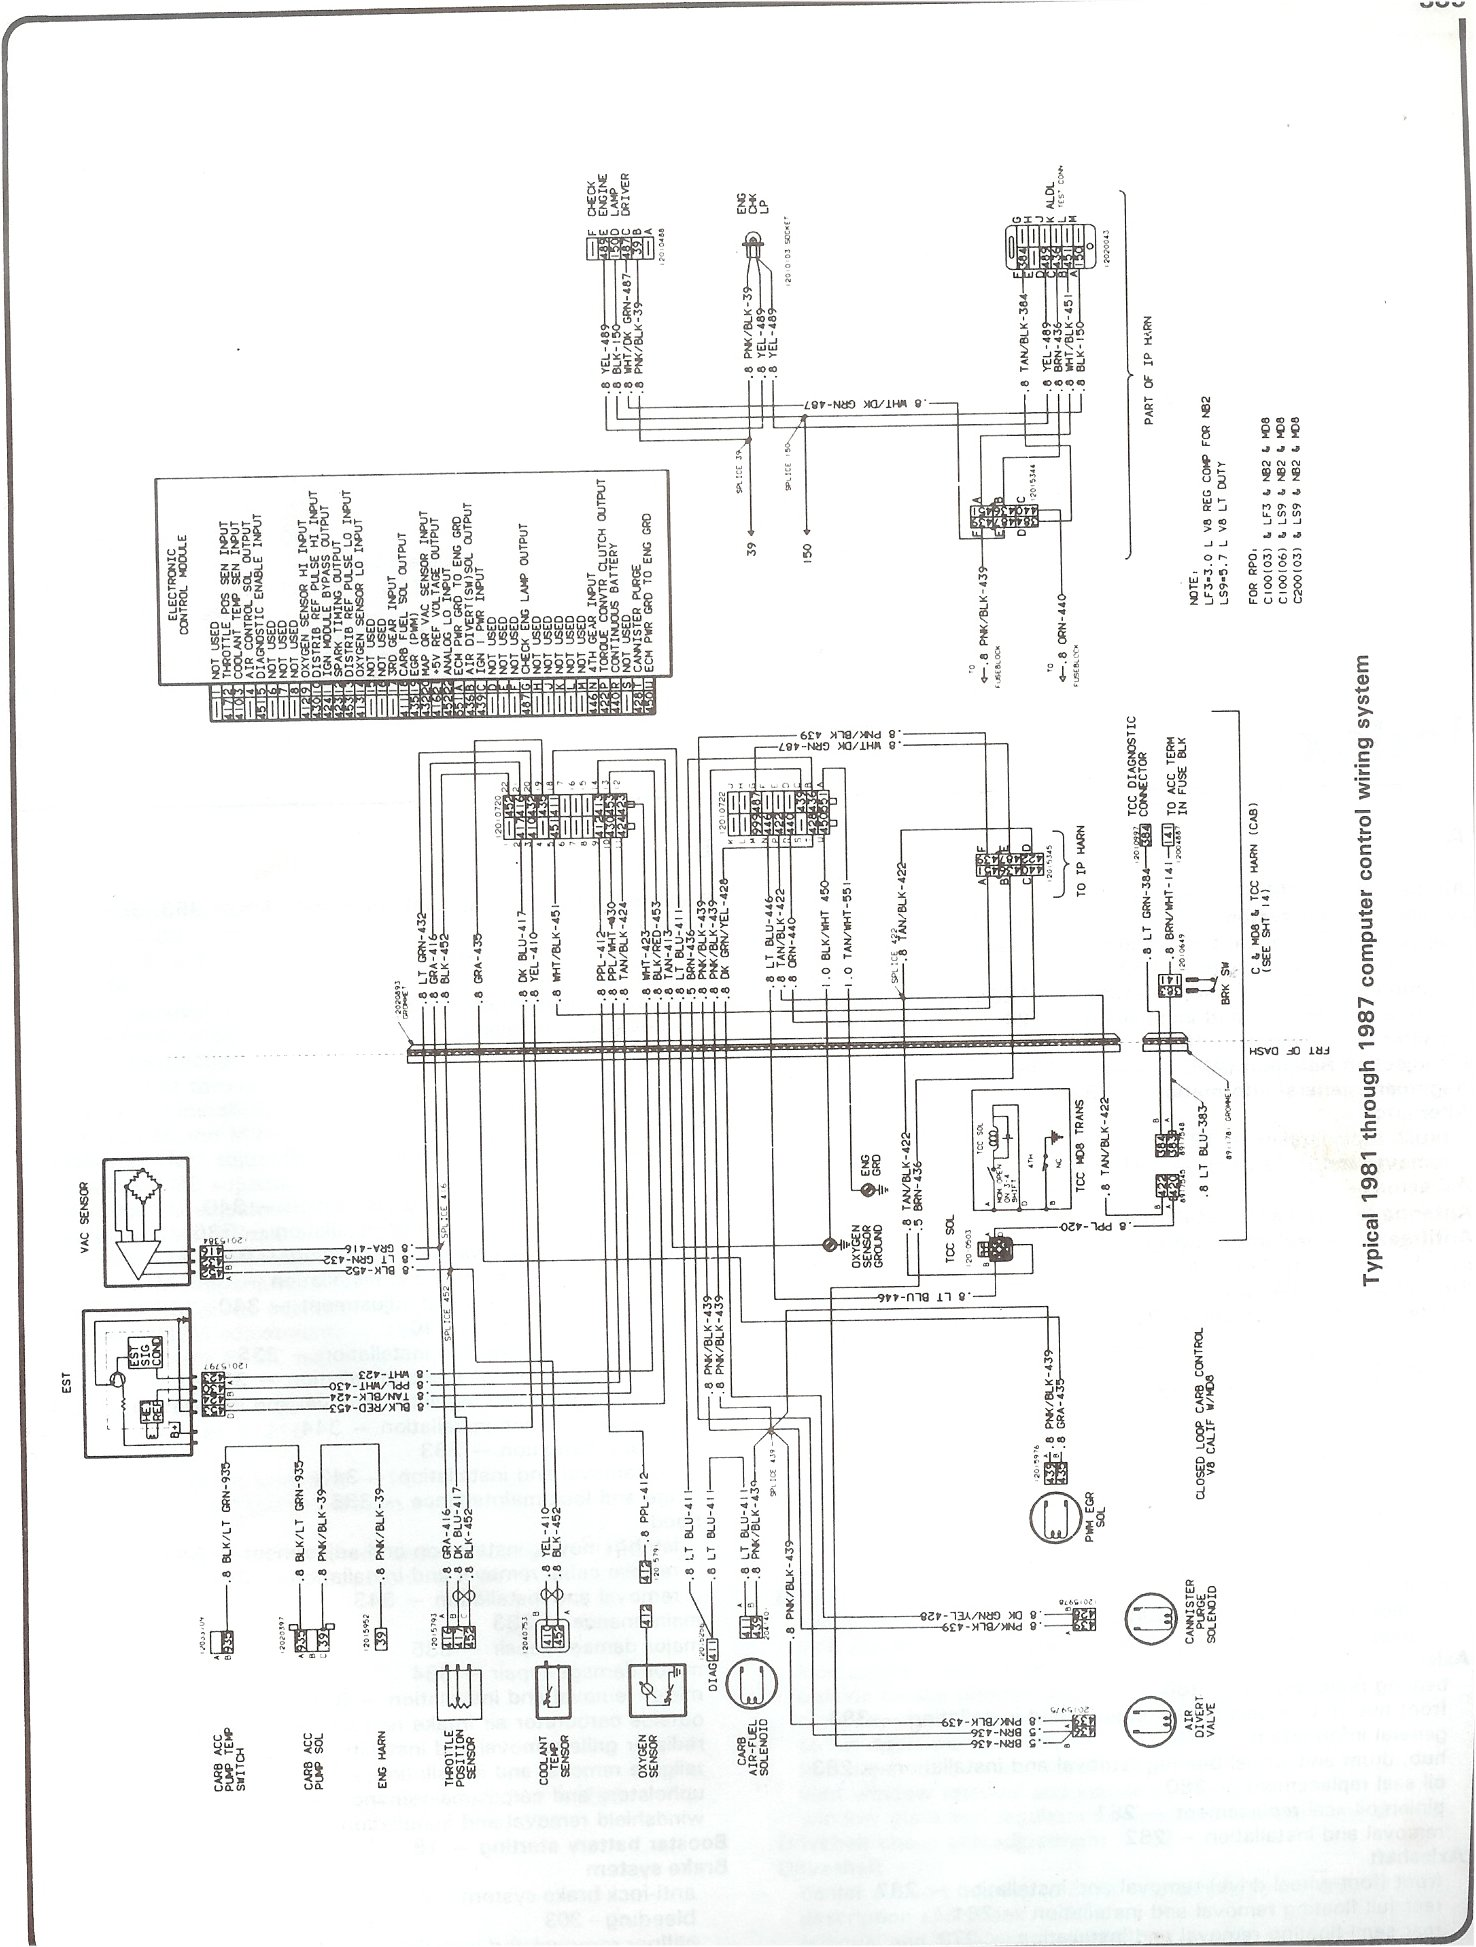 Chevy Tbs Wiring Diagram Automotive 1955 Tail Light Harness 55 Ignition Library Rh 31 Skriptoase De Chevrolet 1979